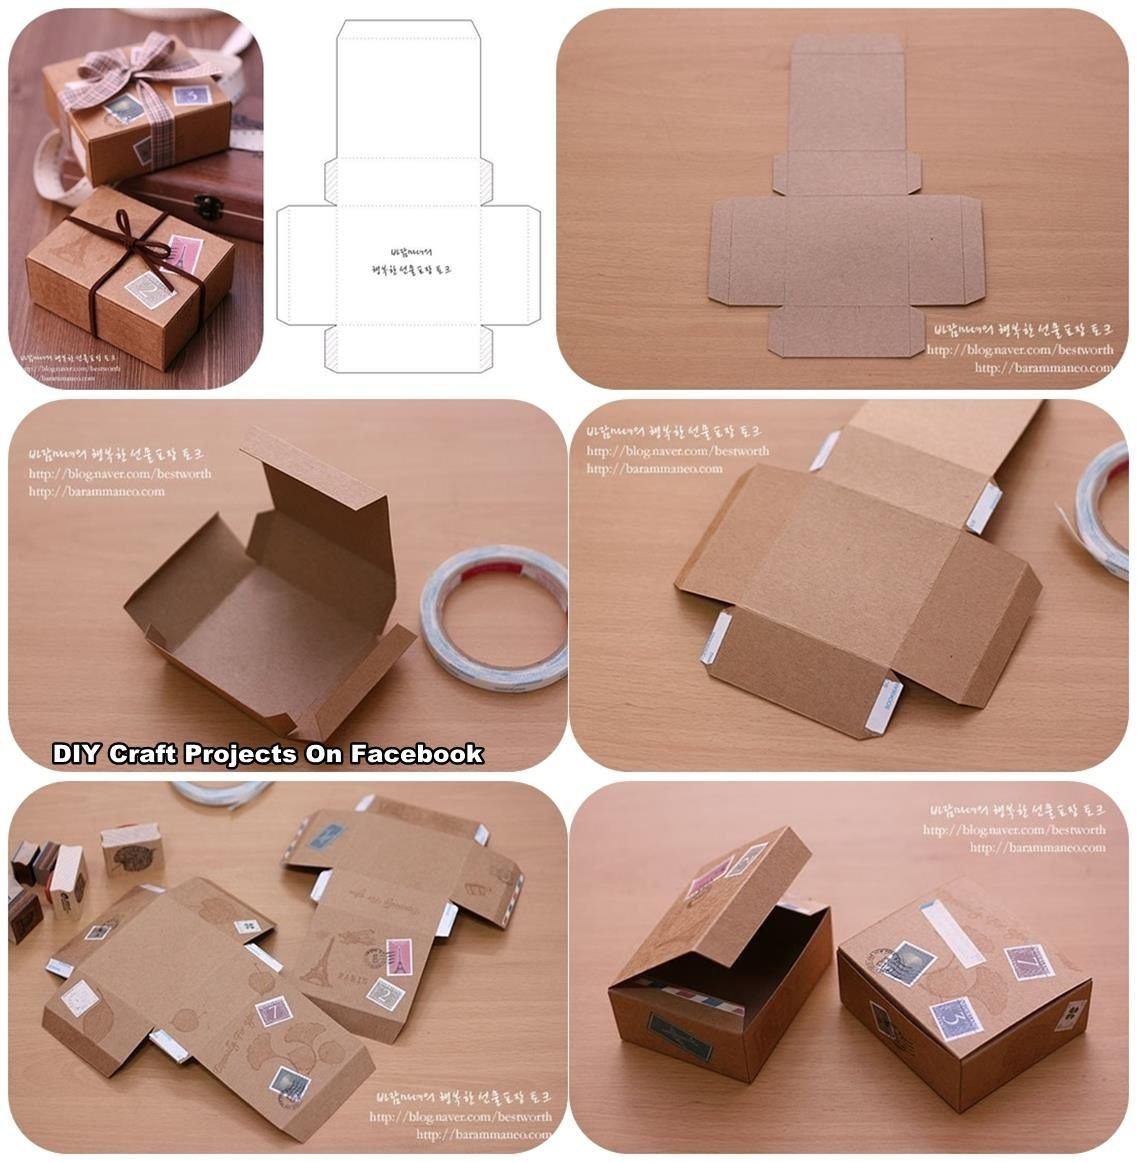 How to make your own paper box good for a food box or for gifts how to make your own paper box good for a food box or for gifts diy box packaging solutioingenieria Gallery